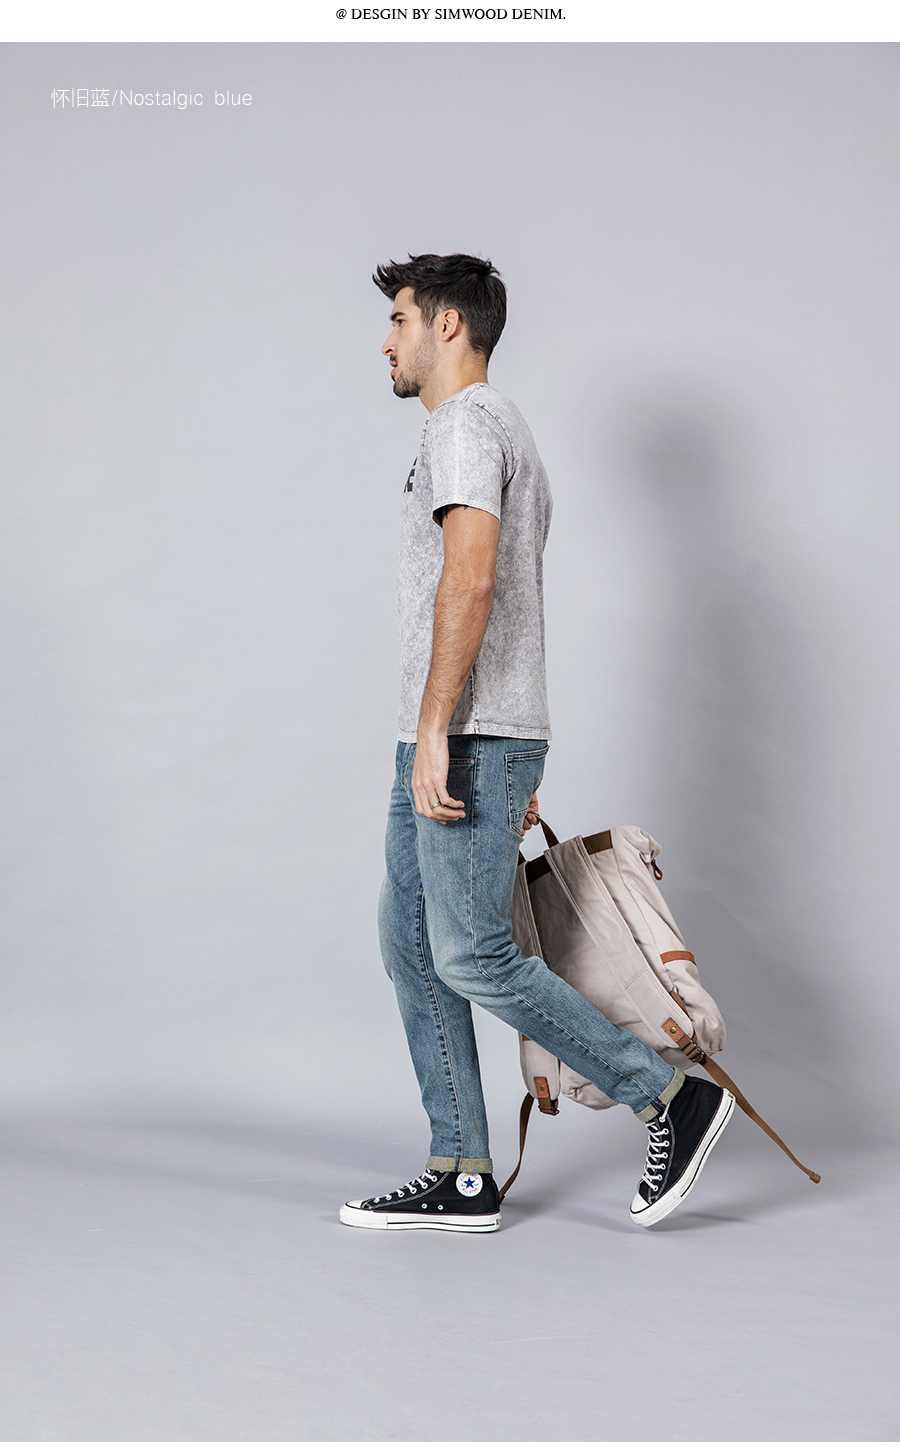 SIMWOOD 2020 New Jeans Men Classical Jean High Quality Straight Leg Male Casual Pants Plus Size Cotton Denim Trousers  180348 25